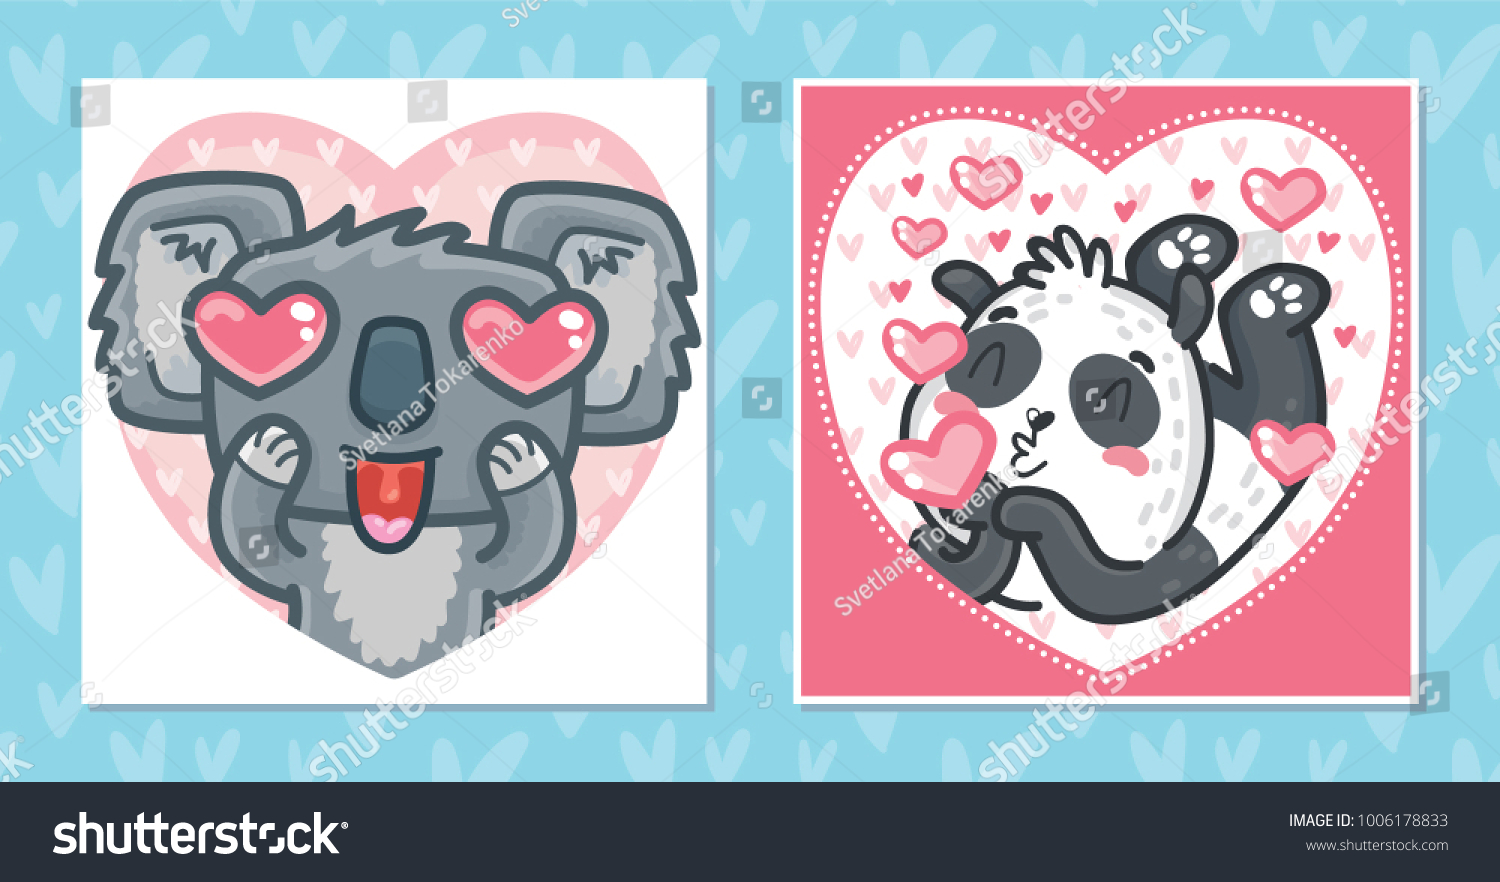 Set Romantic Valentines Day Cards Characters Stock Vector Royalty